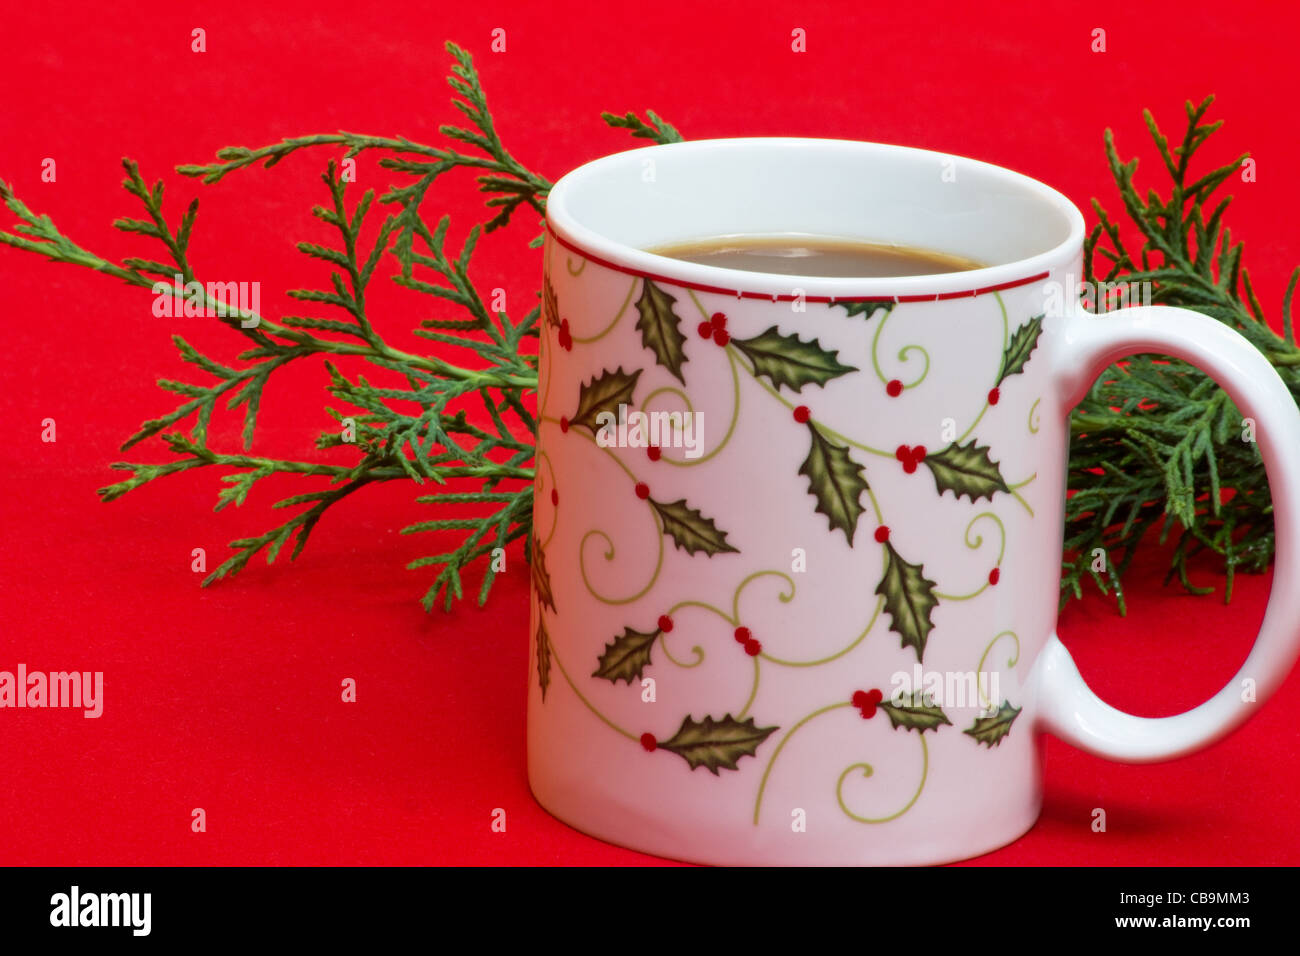 Christmas motif coffee mug and evergreen on red background - Stock Image